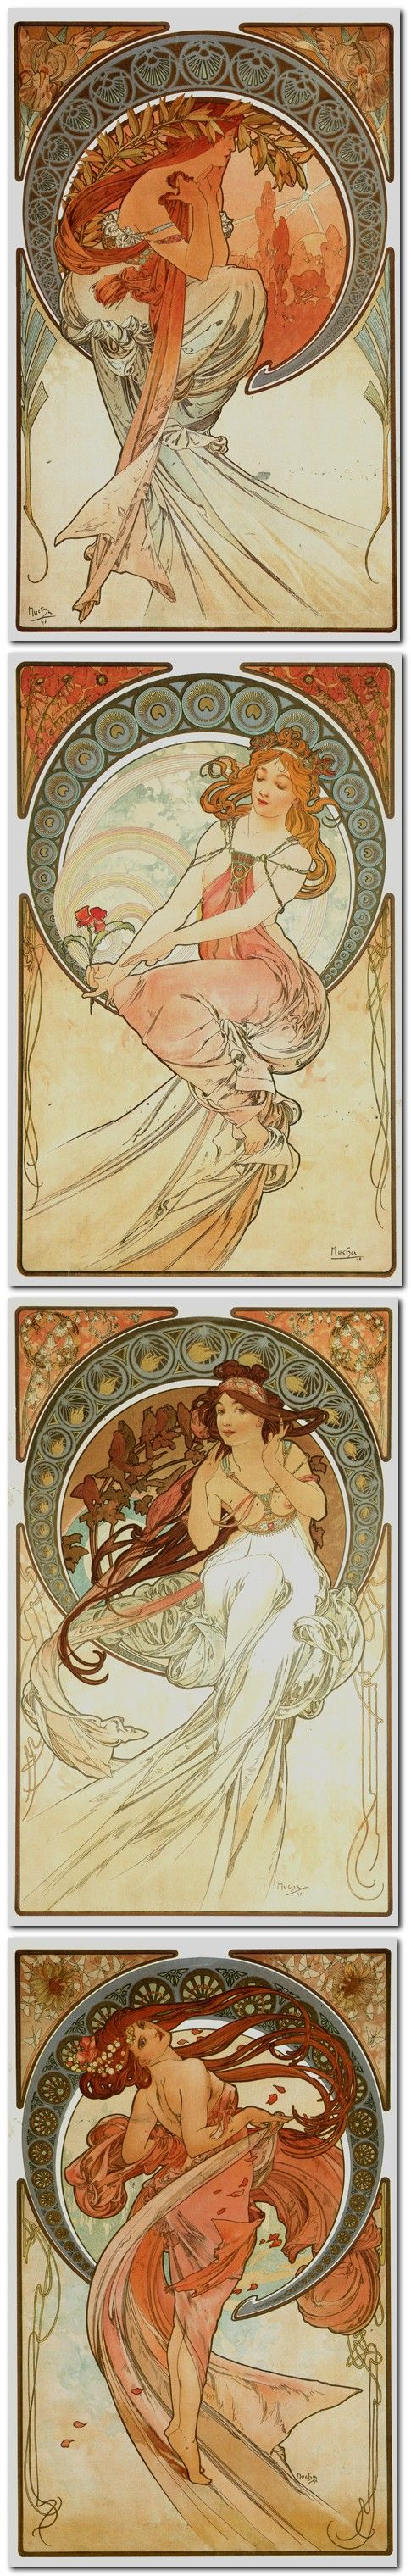 By 1898, Mucha had become a famous and creative Art Nouveau artist. He designed and published postcards, theatre and advertisement posters, numerous illustrations and decorative panels series, set around central themes inspired by nature, some printed on silk. He produced an astonishing amount of drawings, pastel or watercolor studies and designs for interior decorations, cutlery and dinner object, jewelry and fashion.